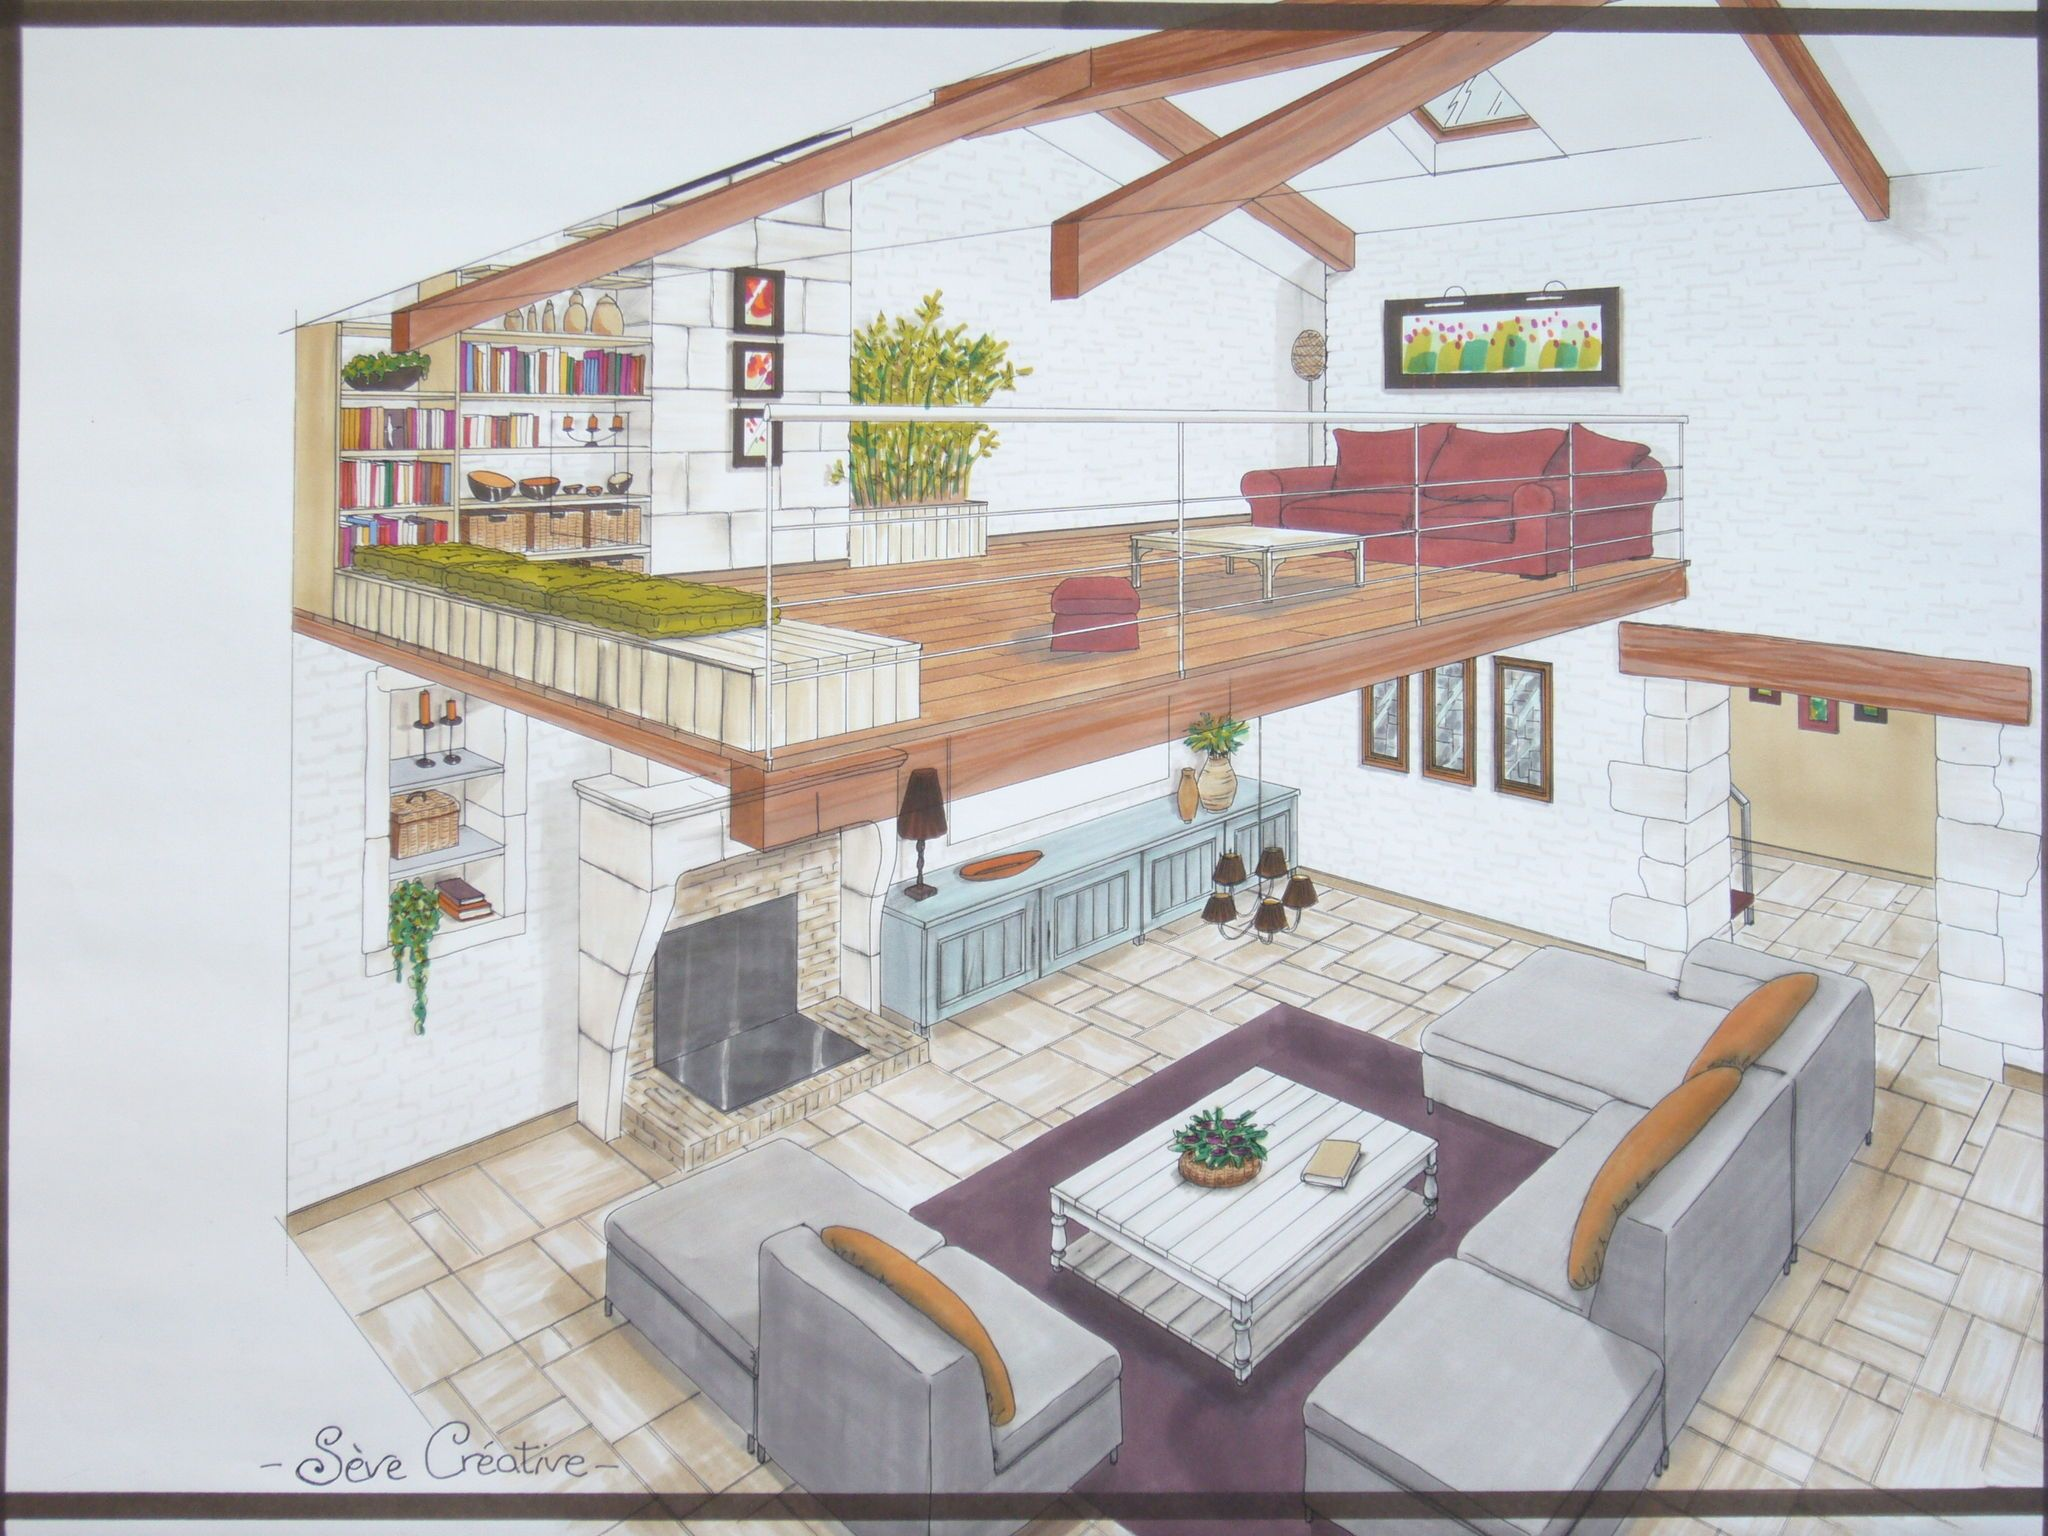 Plan De Maison Mezanine : Salon mezzanine plans perspectives esquisses